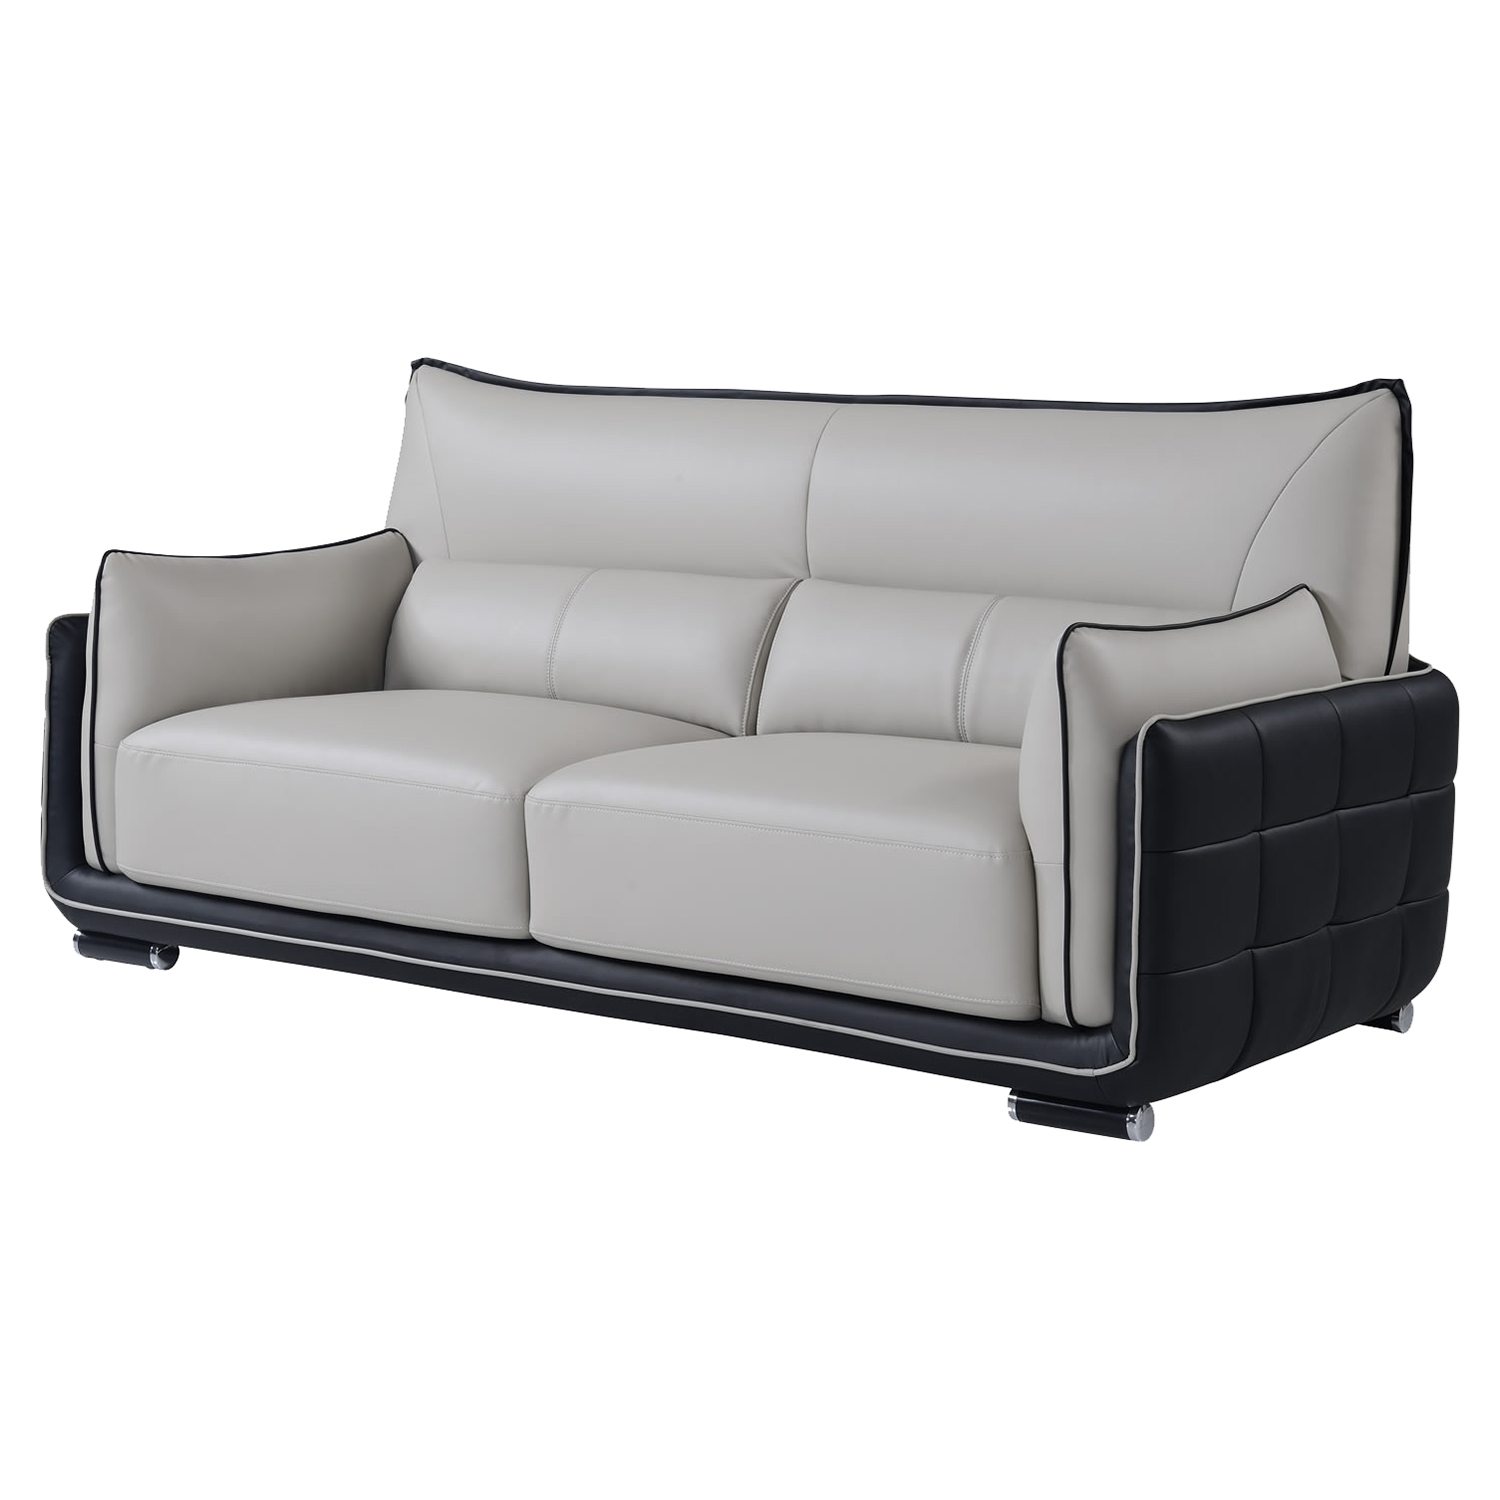 Kaden Natalie Gray/Natalie Black Leather Sofa